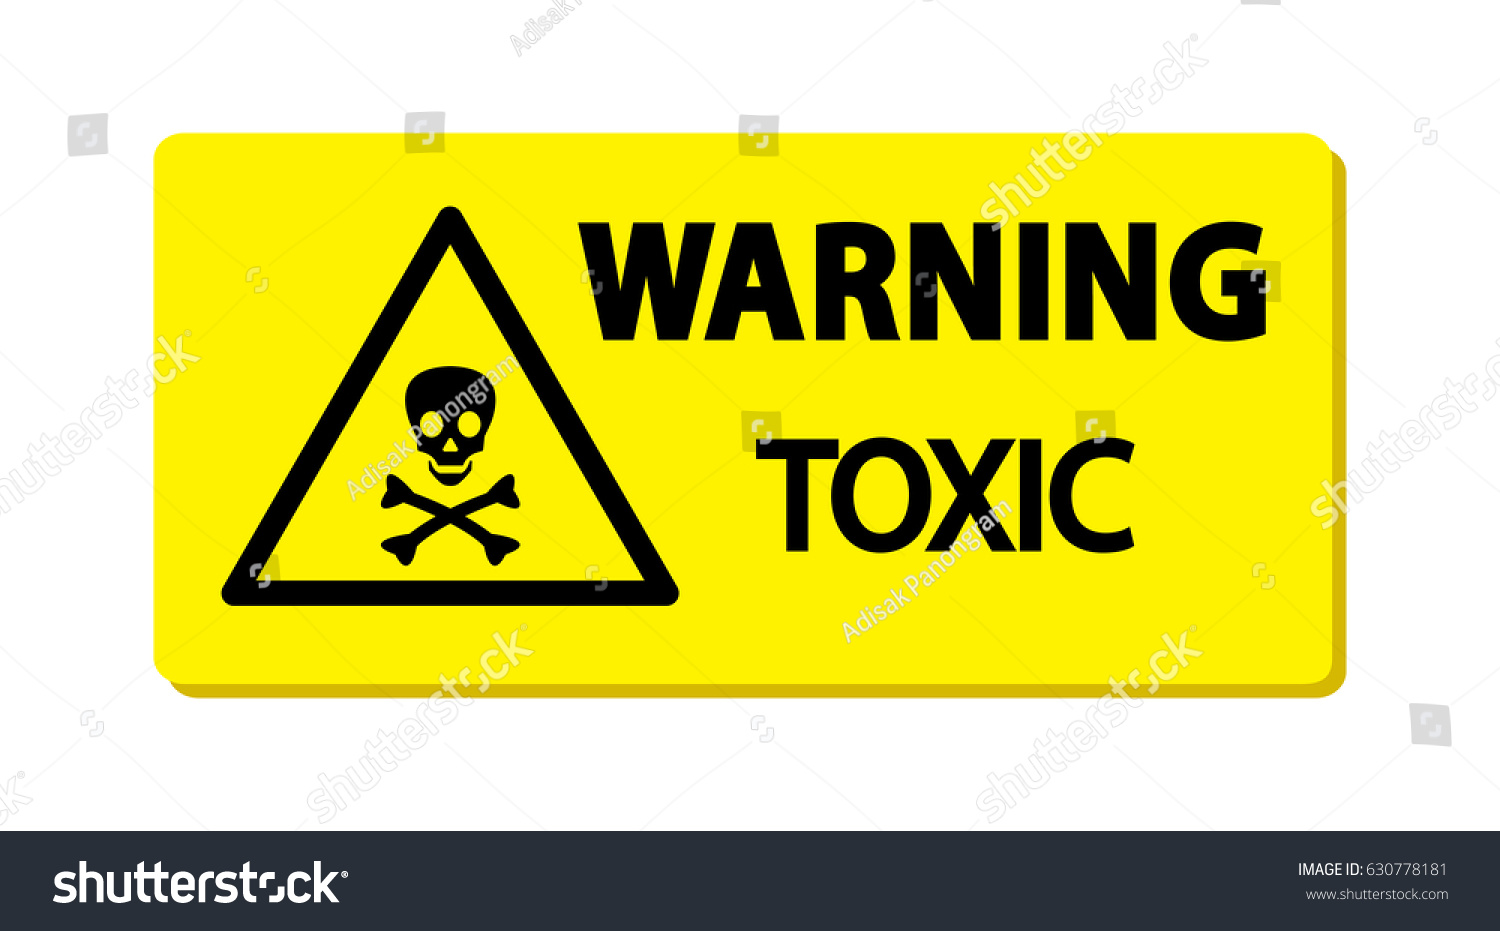 Warning toxic material sing symbol illustration stock vector warning toxic material sing symbol illustration biocorpaavc Images